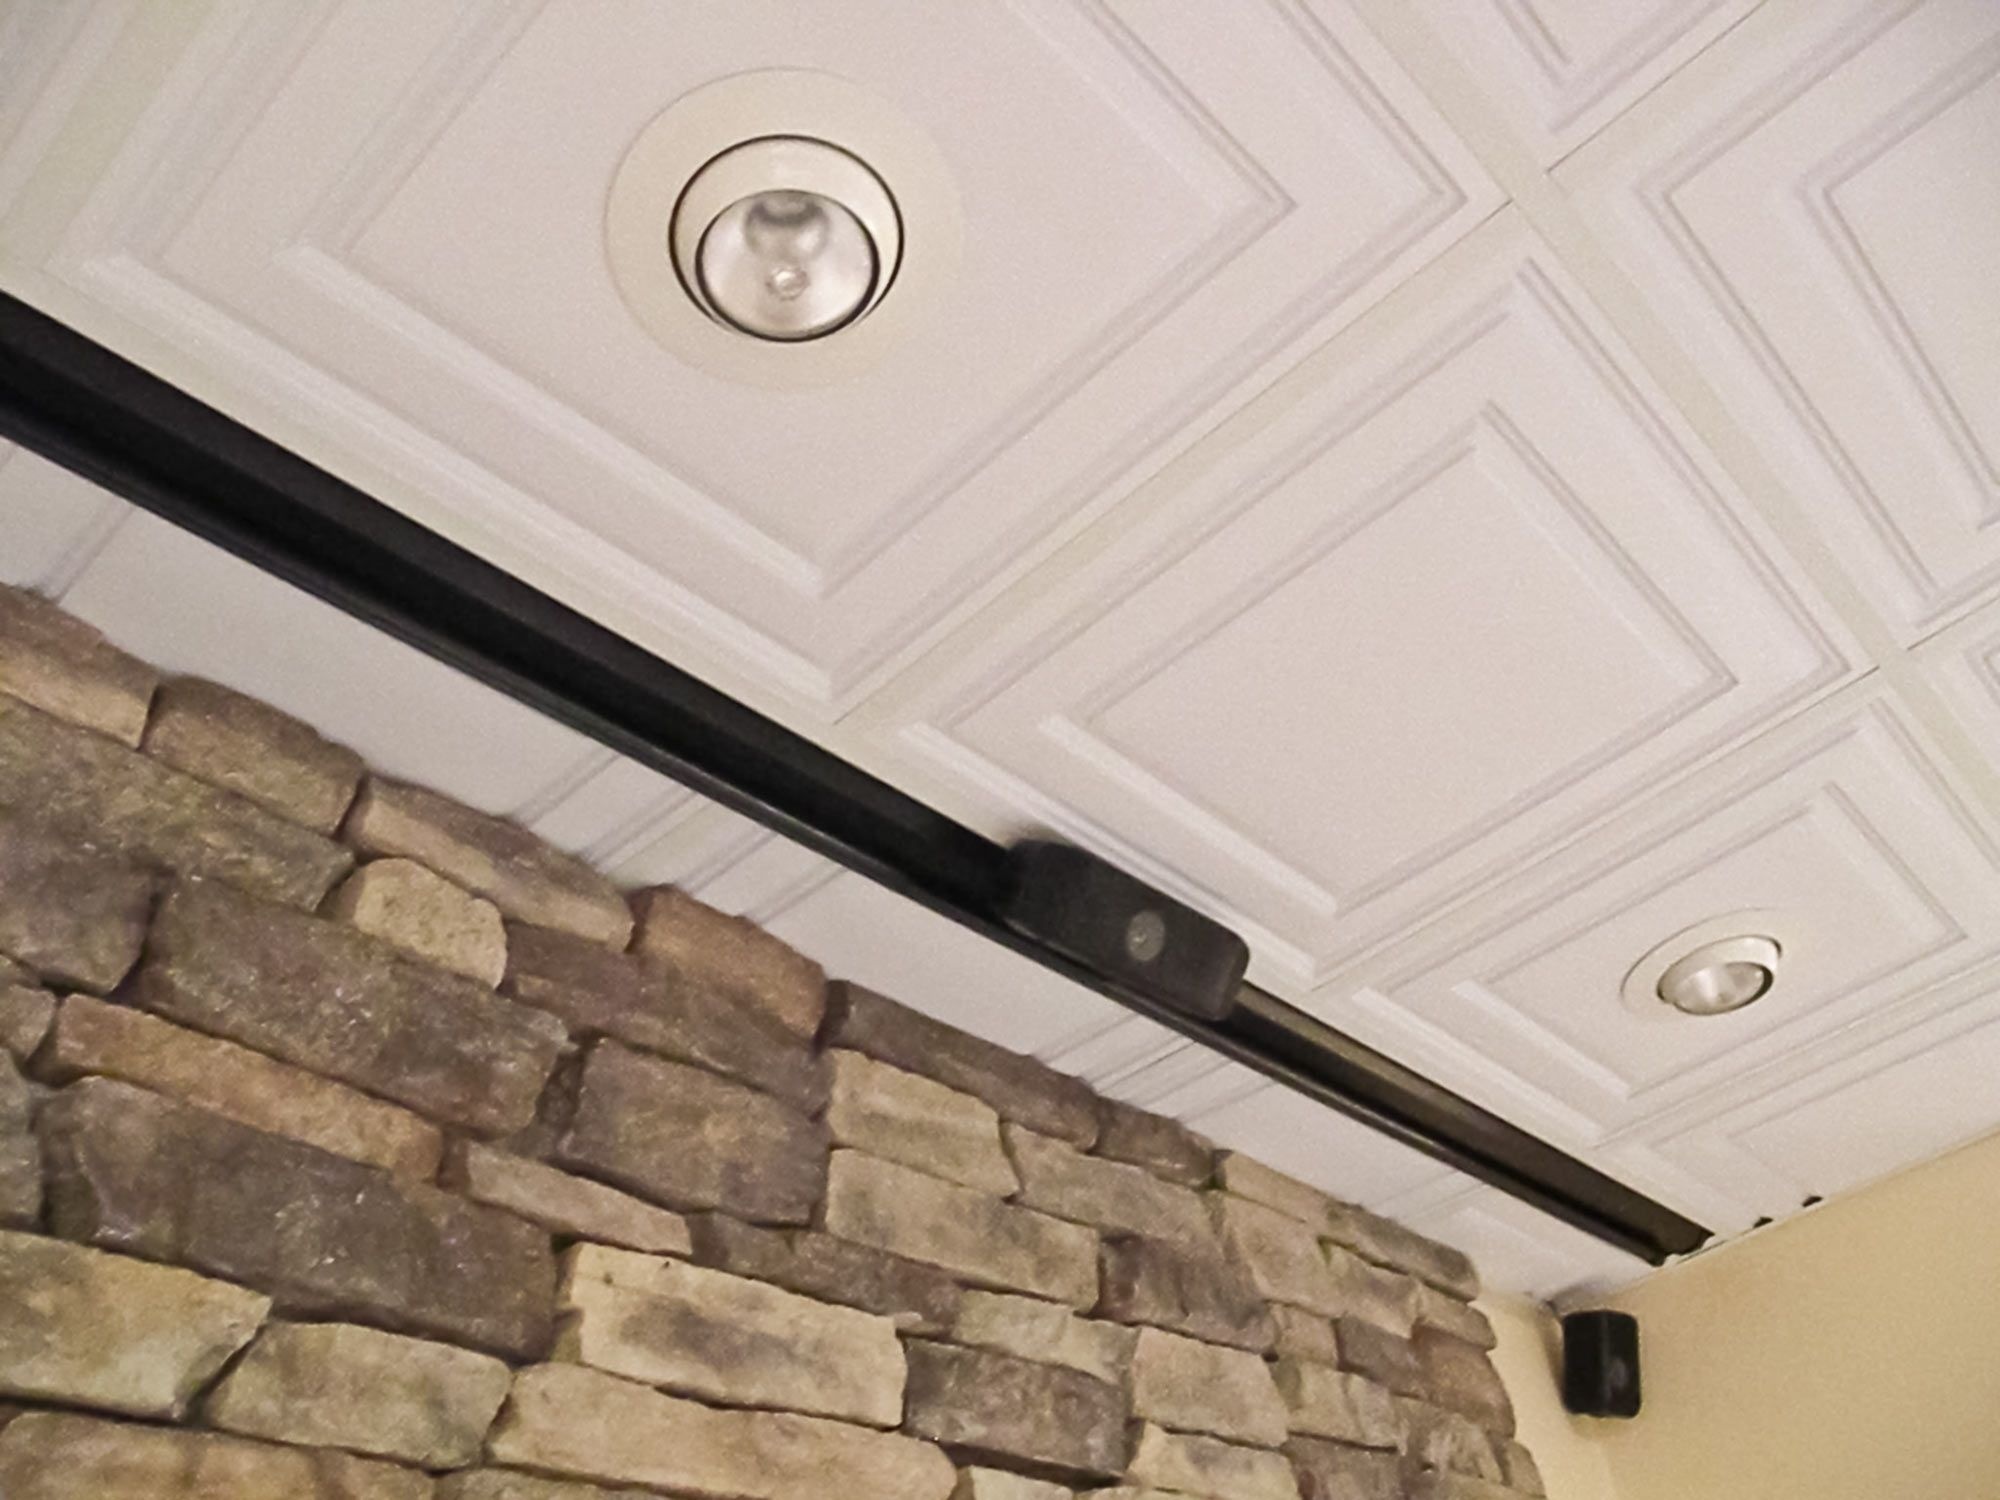 Armstrong adhesive ceiling tiles httpcreativechairsandtables armstrong adhesive ceiling tiles dailygadgetfo Image collections